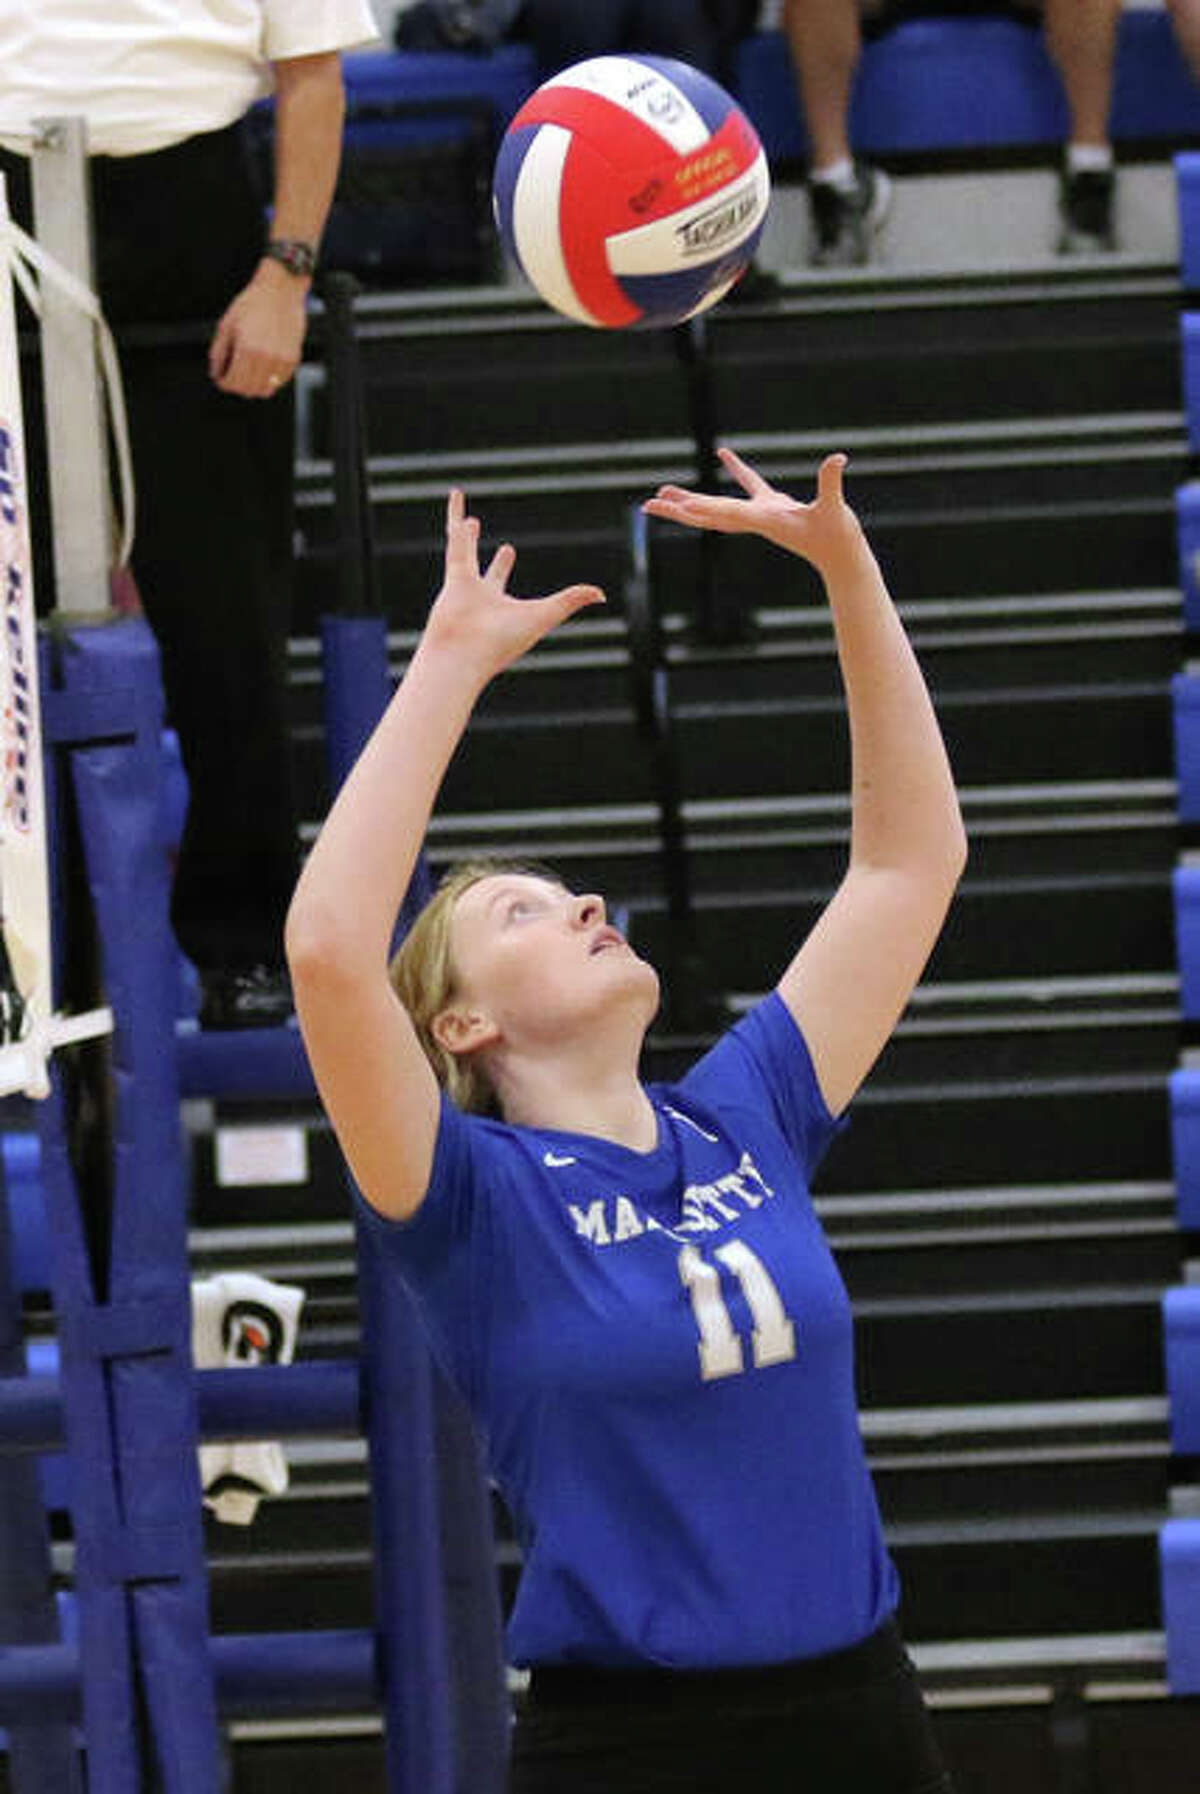 Marquette Catholic's Rachel Heinz sets during a match with Jersey on Tuesday at the Roxana Tournament.